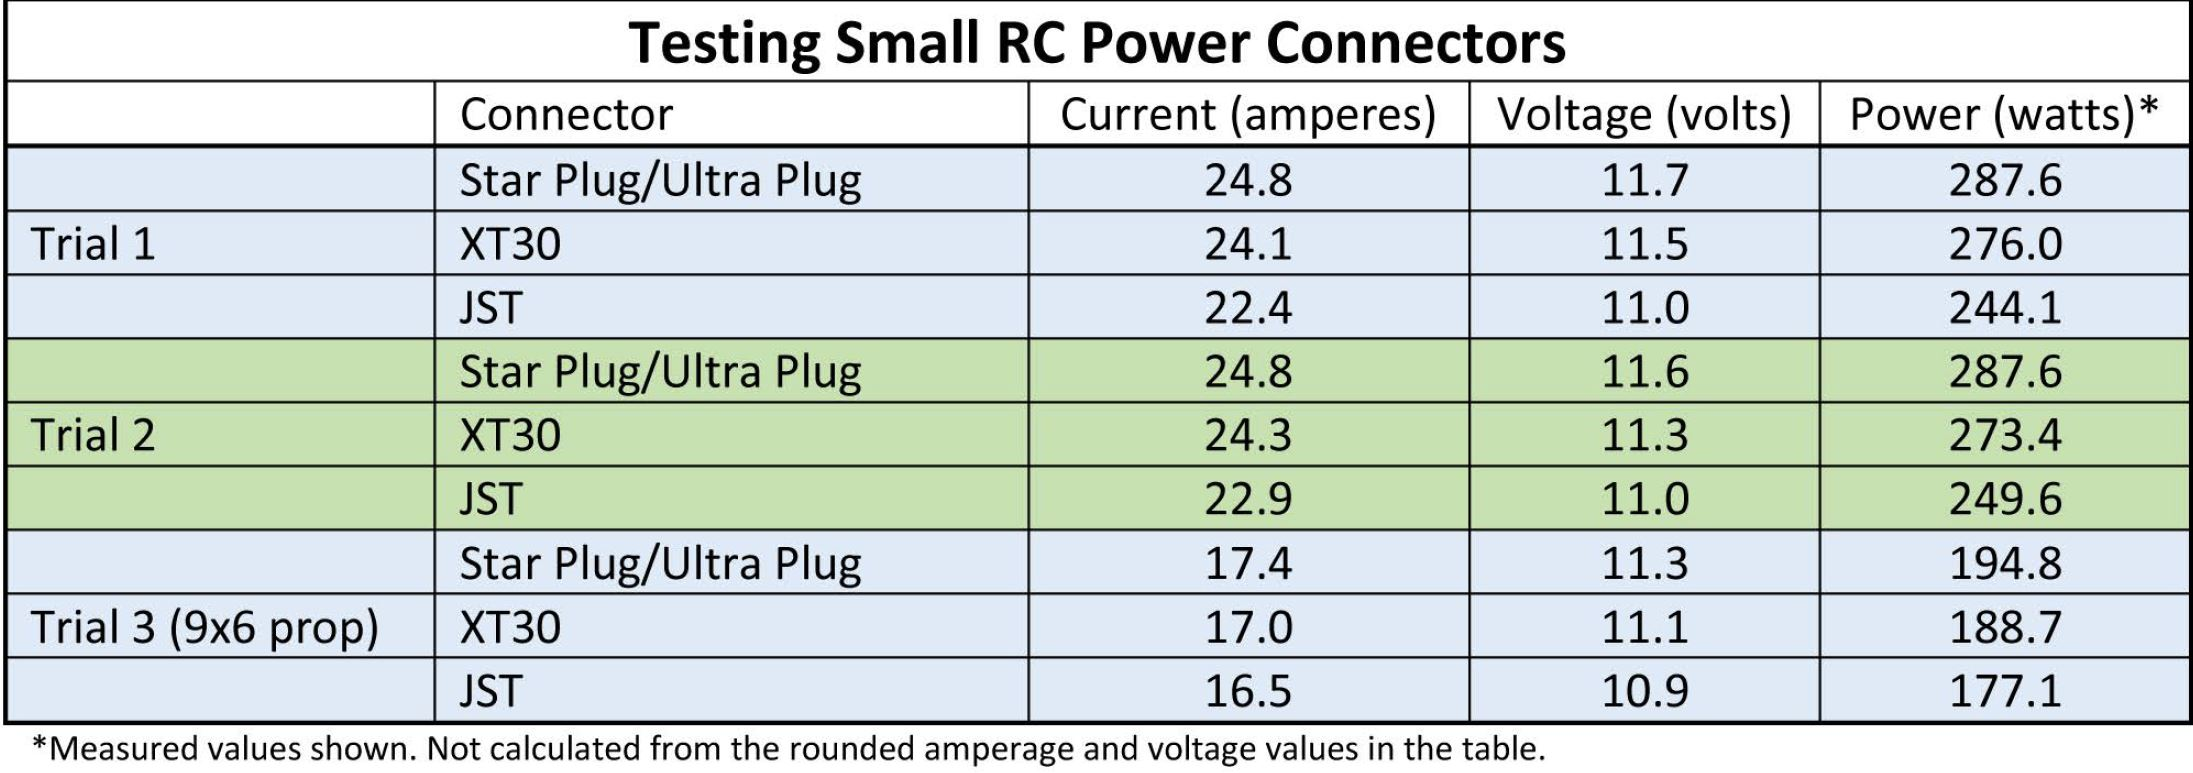 Testing Small Power Connectors for Hobby RC - Tested